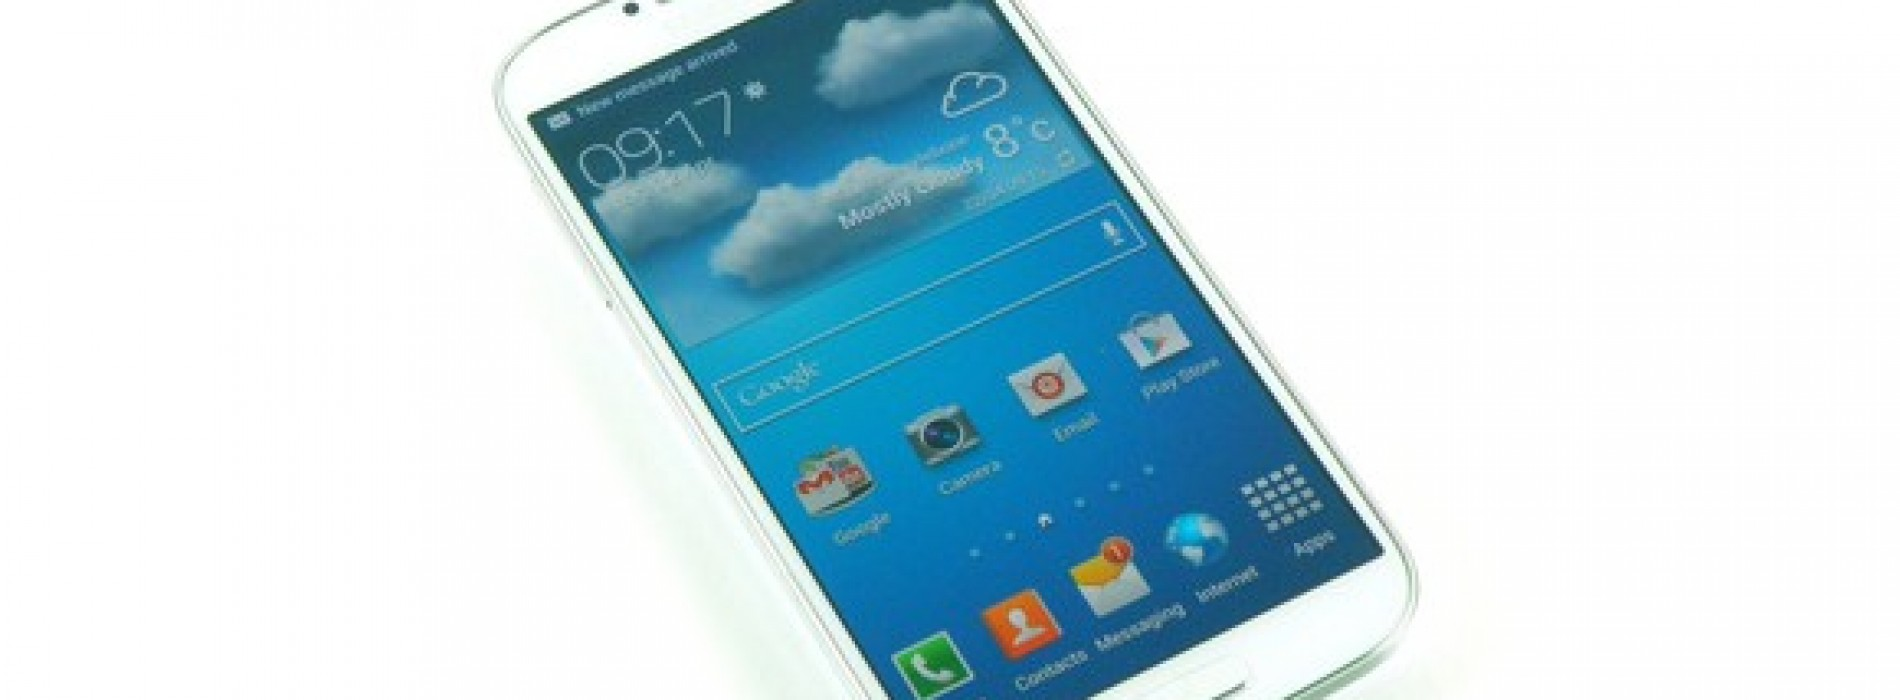 Best Buy pushes back Sprint Galaxy S4 preorders 2 to 3 weeks